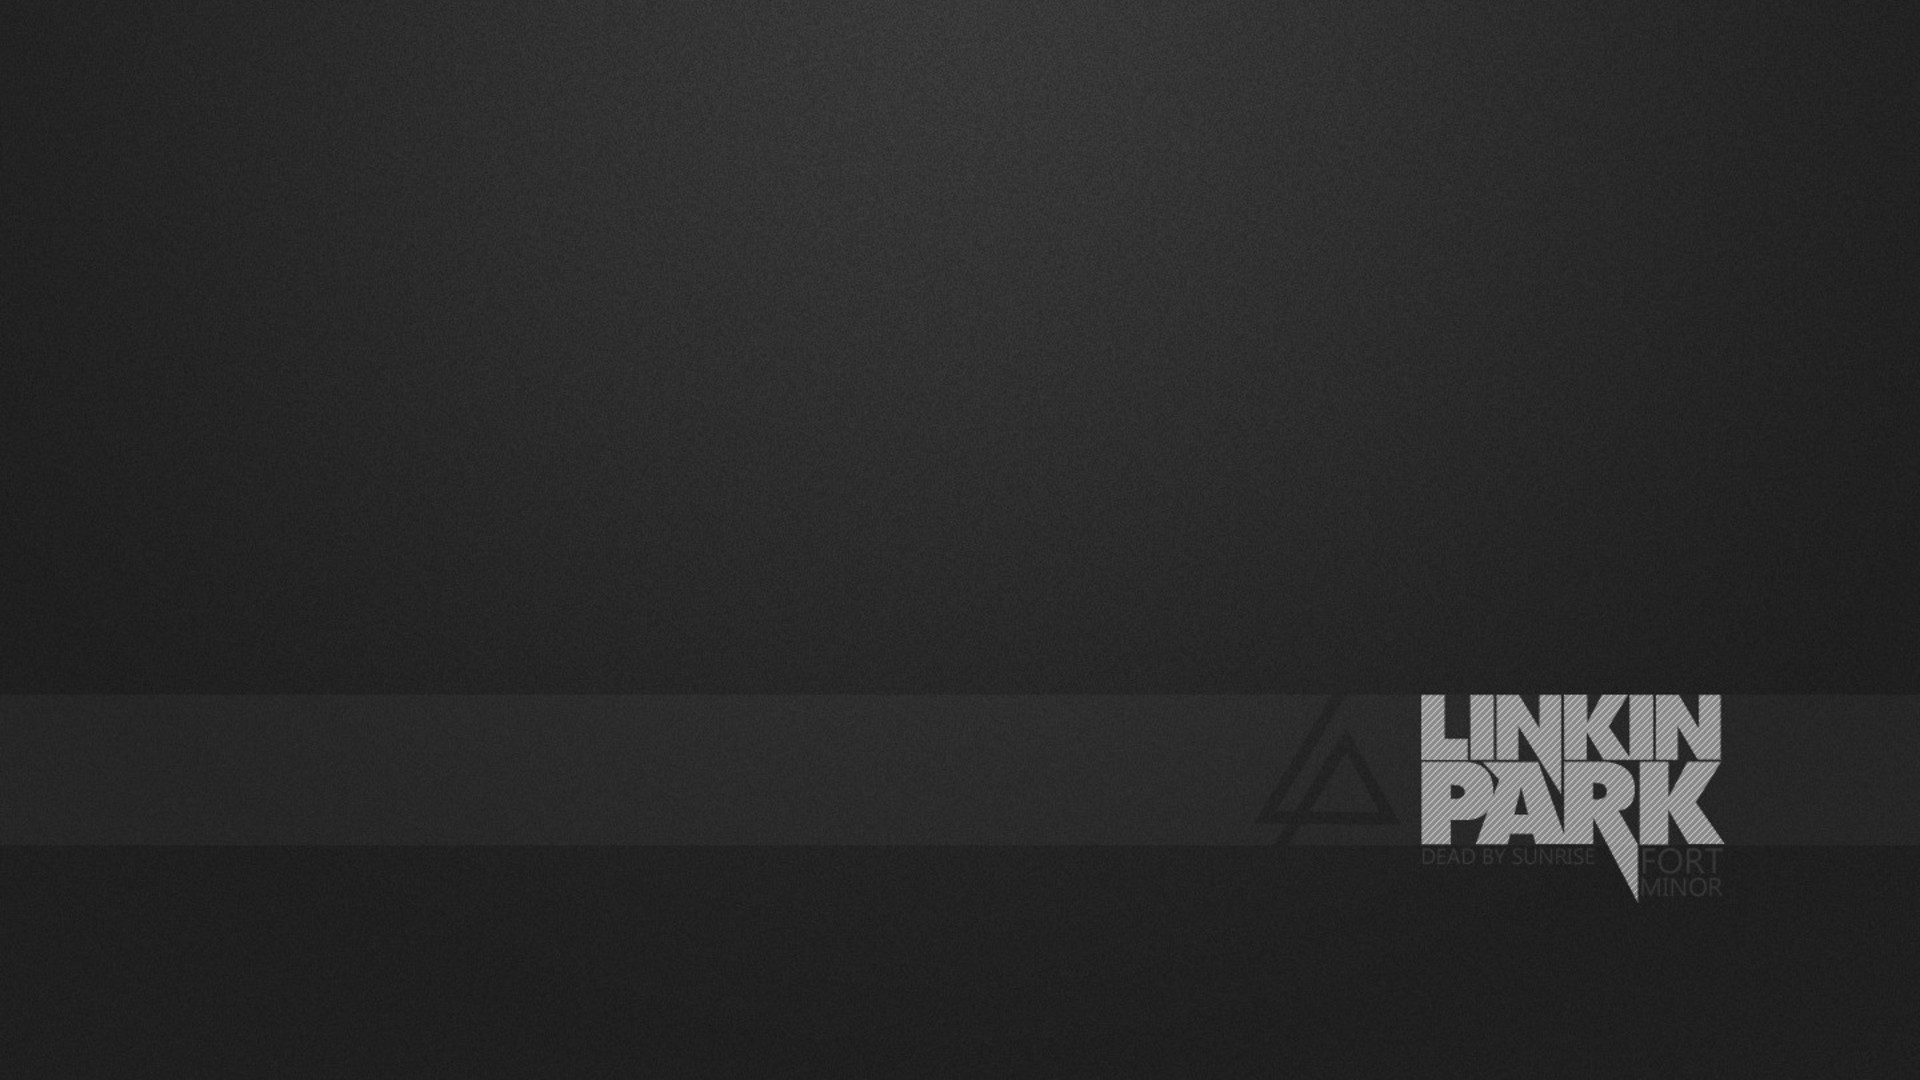 Linkin Park Simple Ps4wallpapers Com